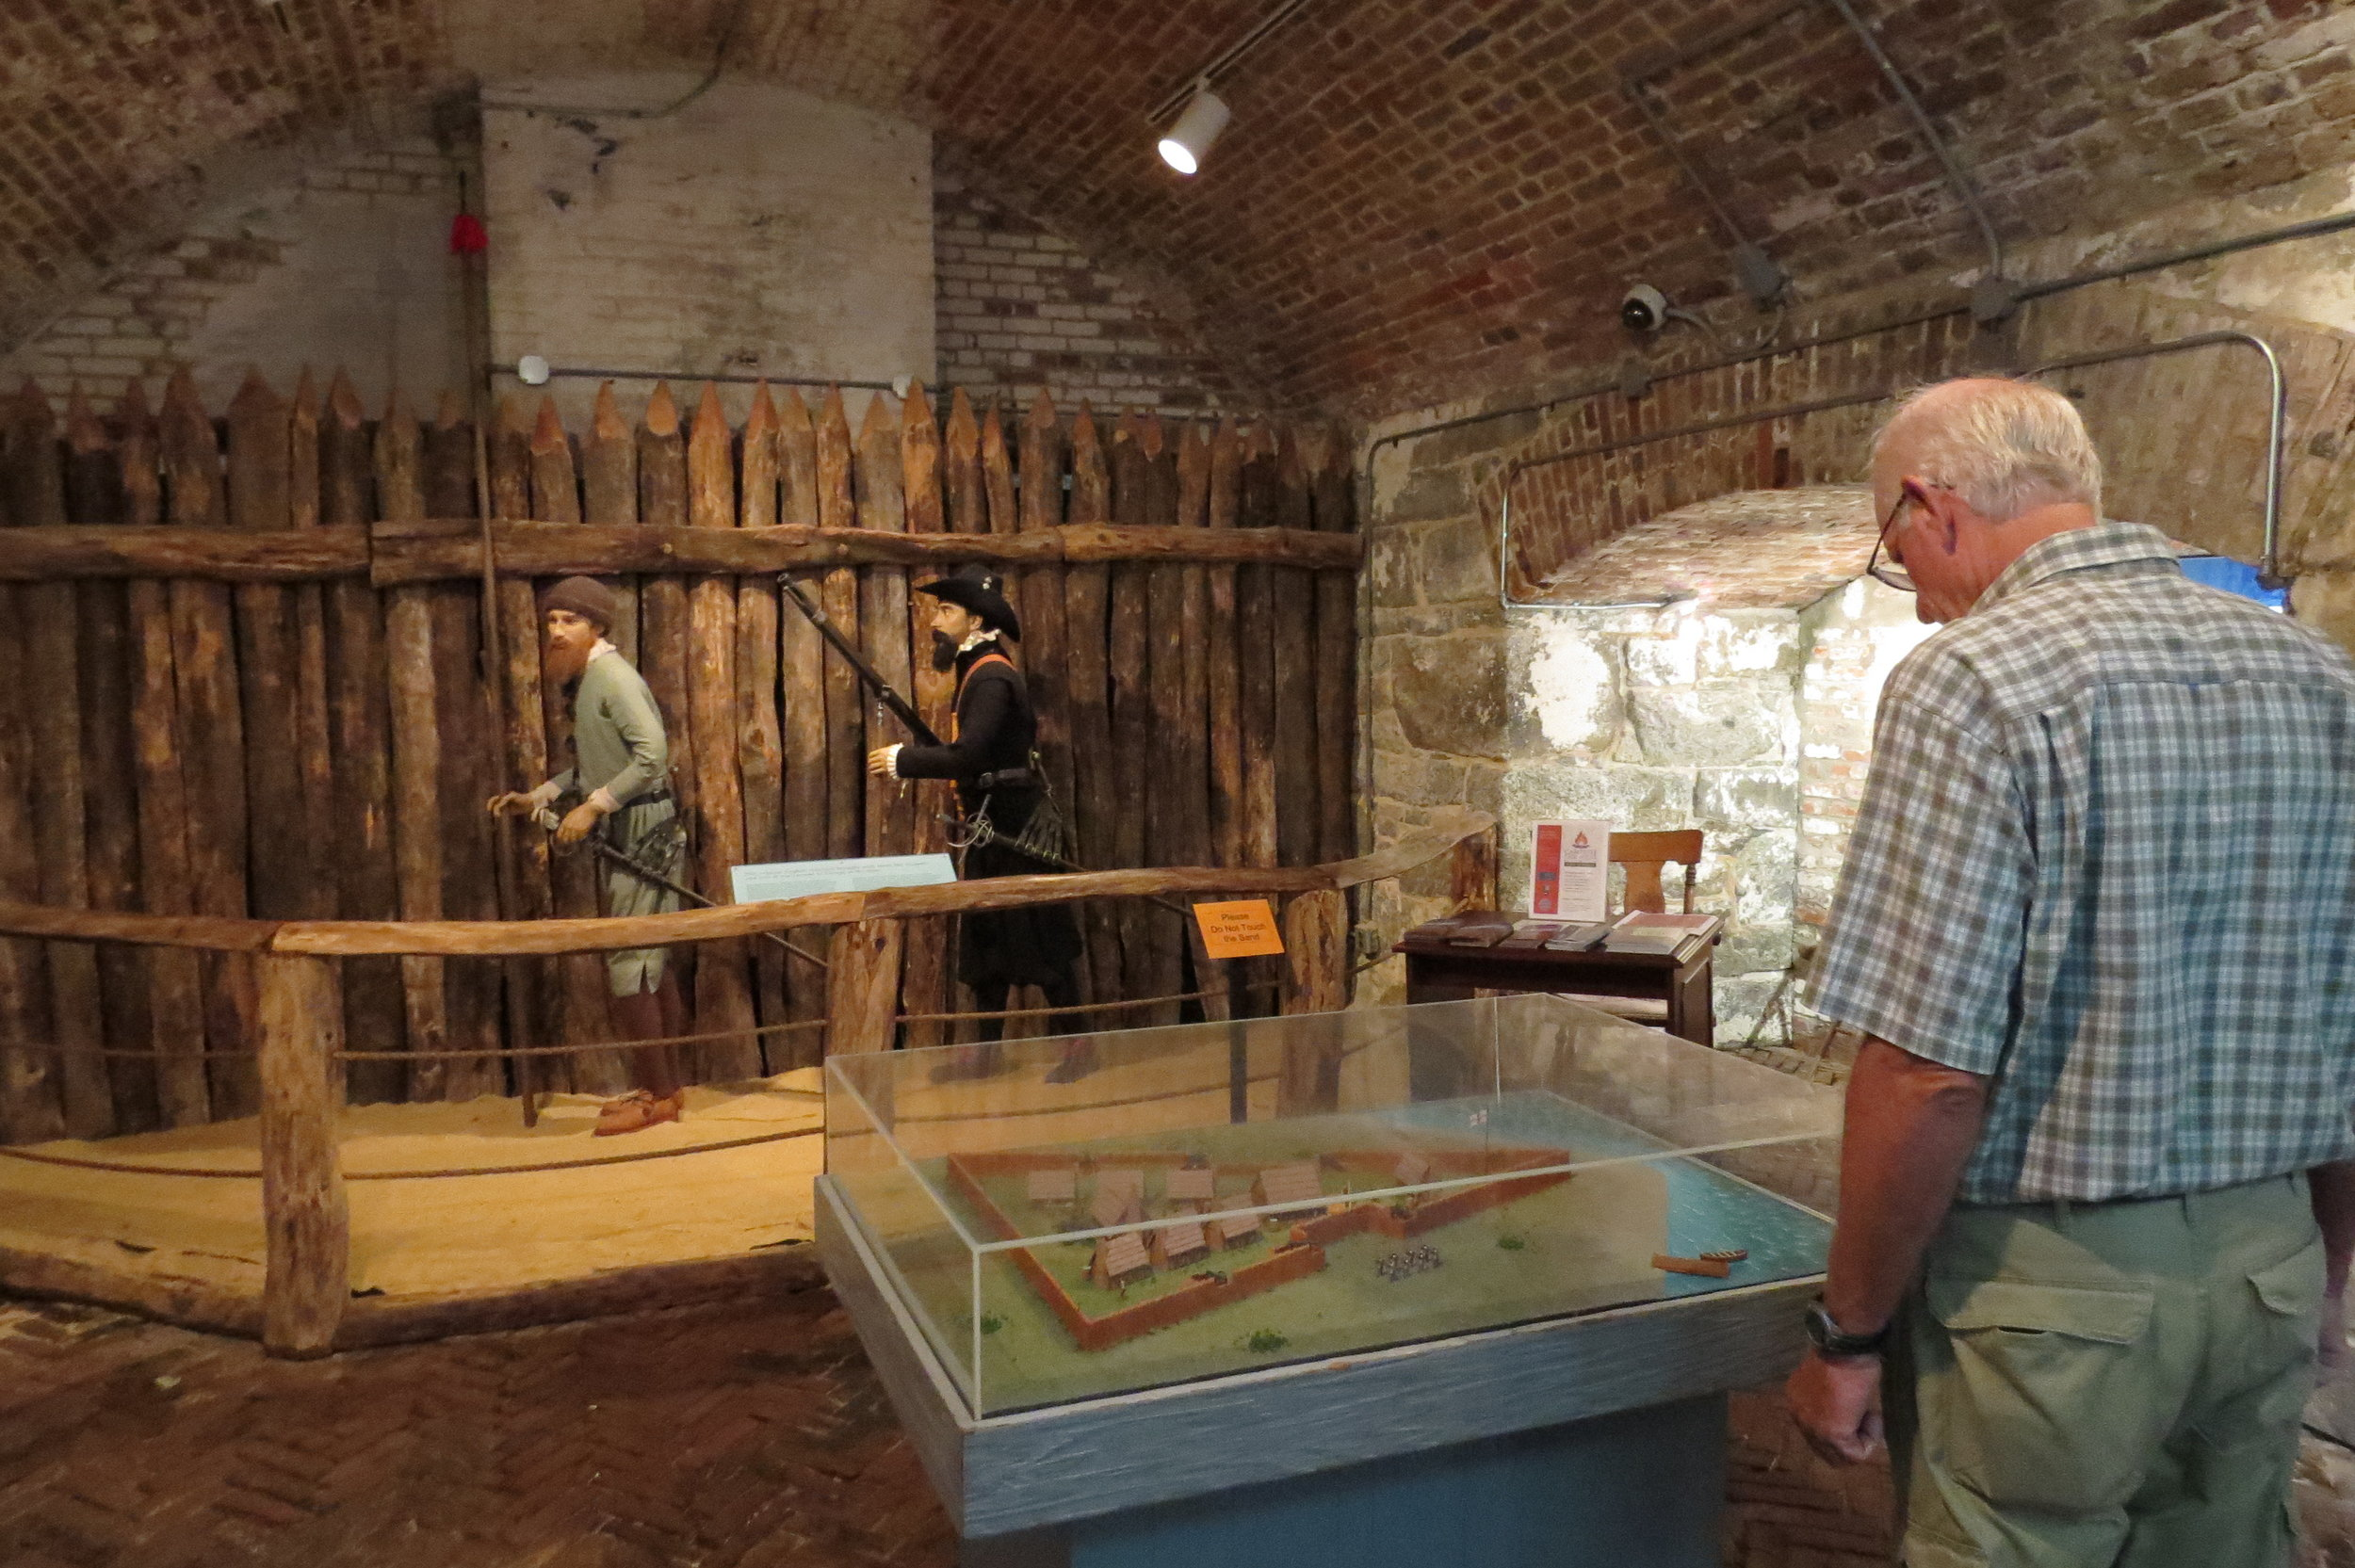 Lots of history and interesting exhibits in the Casemate Museum